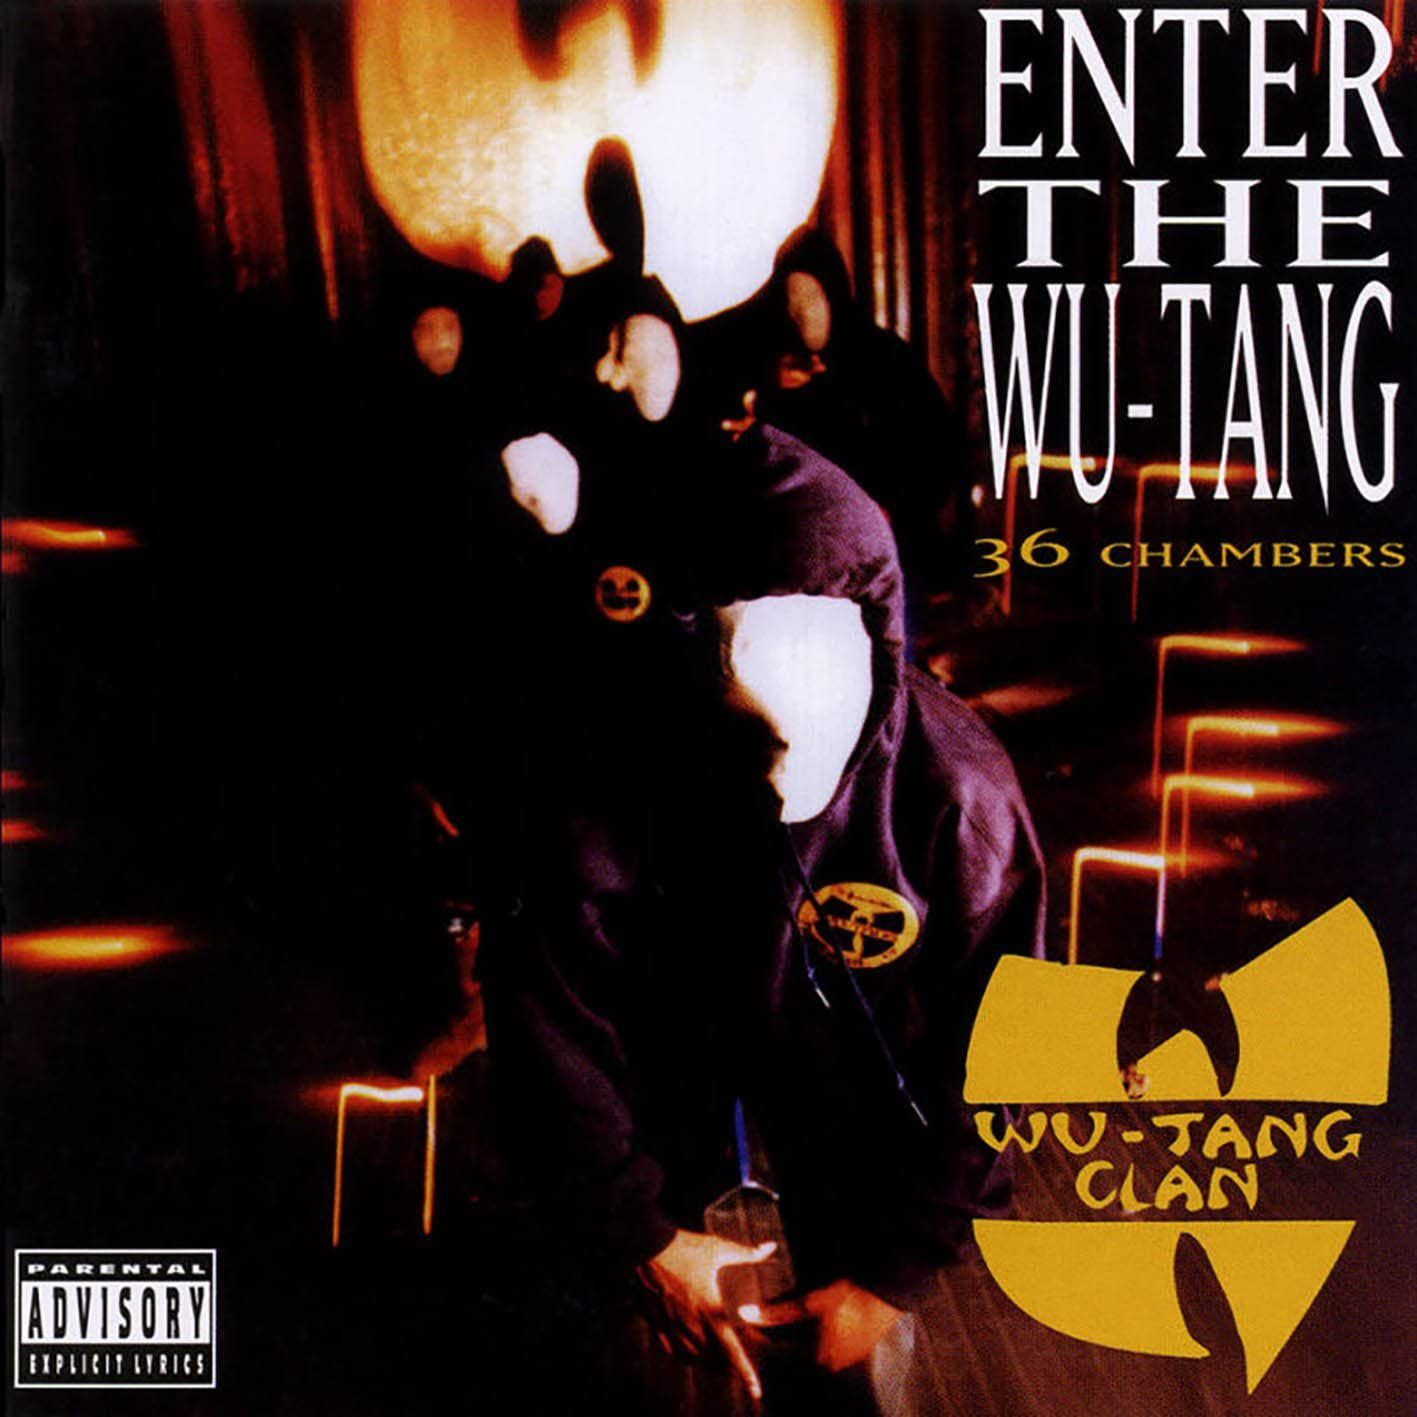 Wu-Tang Clan's 36 chambers album cover